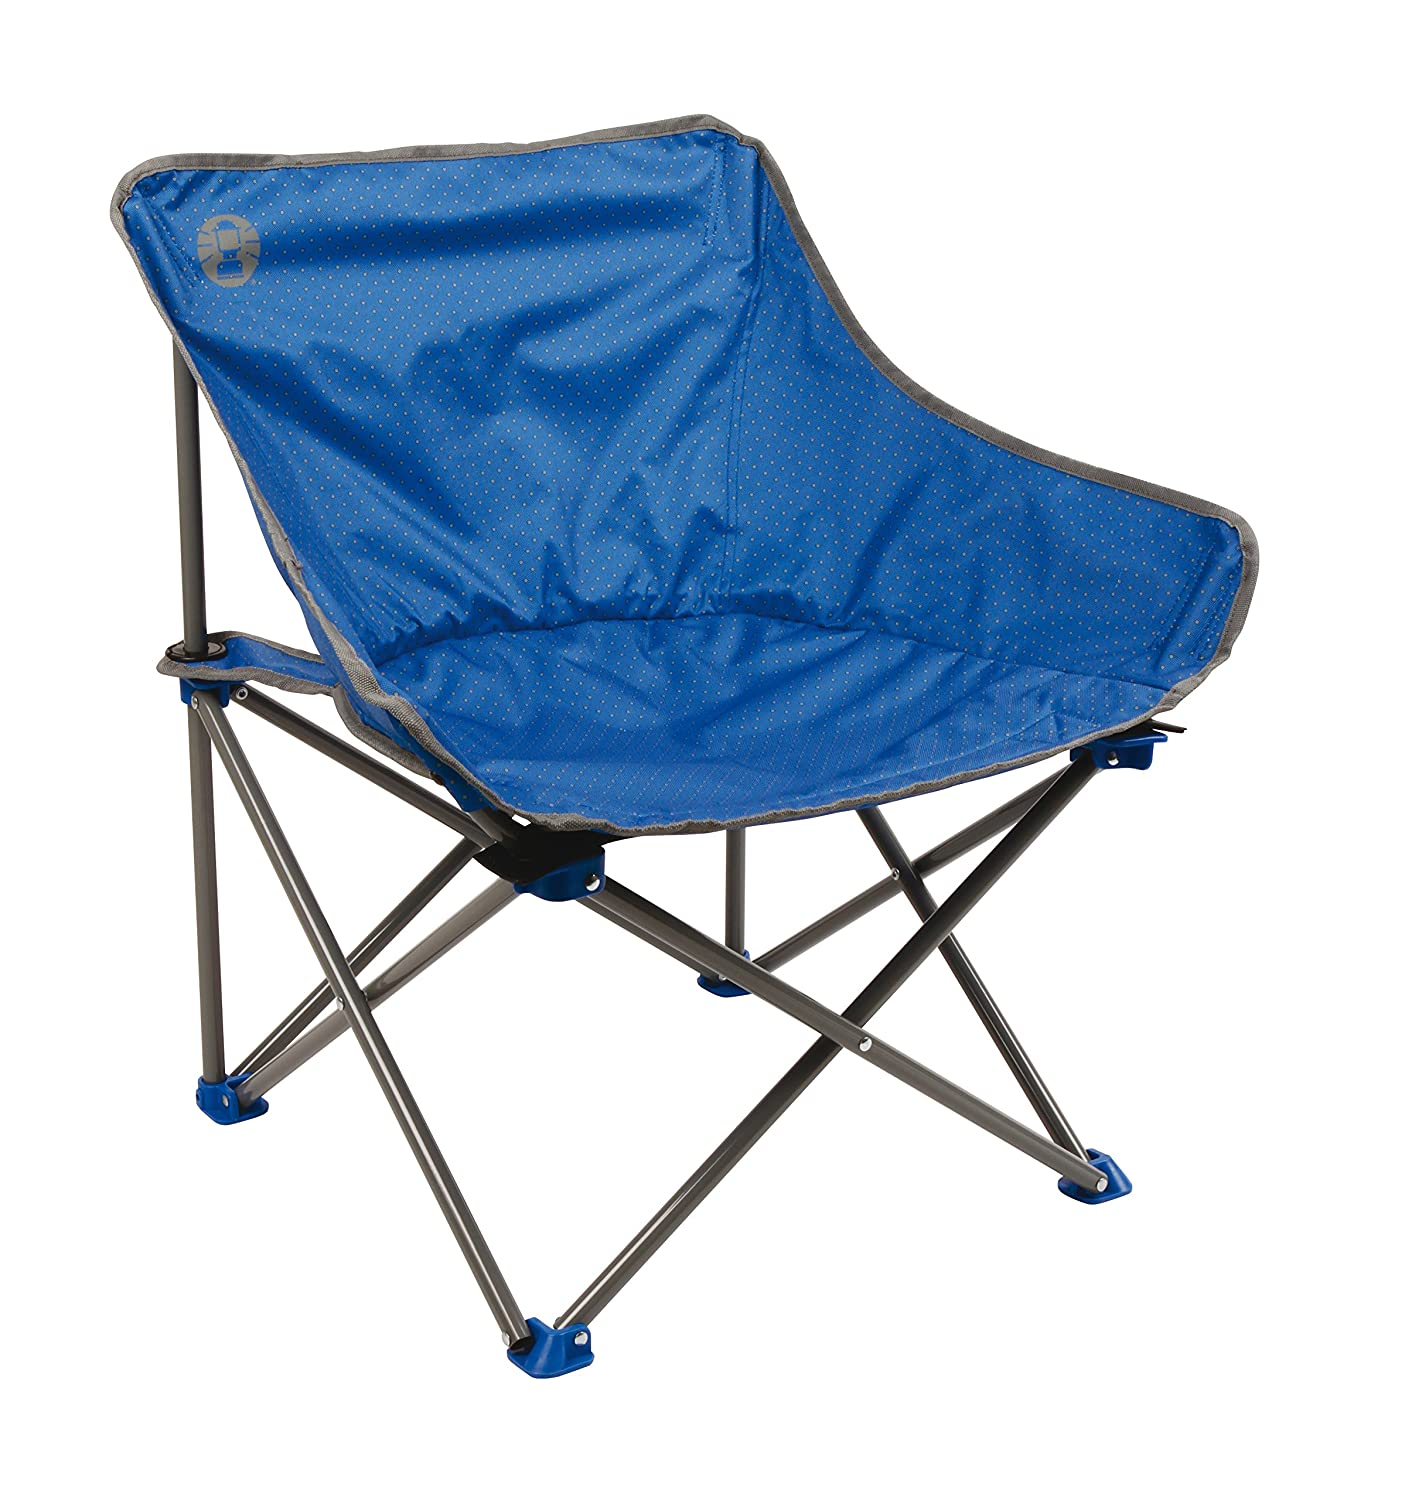 Coleman Standard Quad Chair Green Amazon Sports & Outdoors